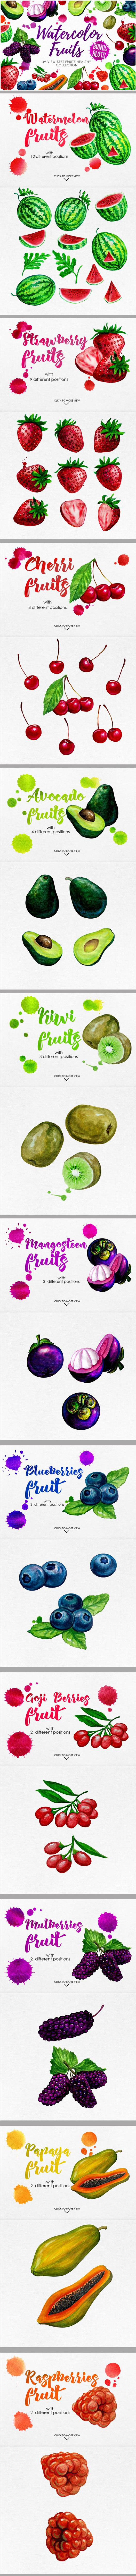 """Check out my @Behance project: """"Watercolor Fruits Vol. 3"""" https://www.behance.net/gallery/46402521/Watercolor-Fruits-Vol-3"""